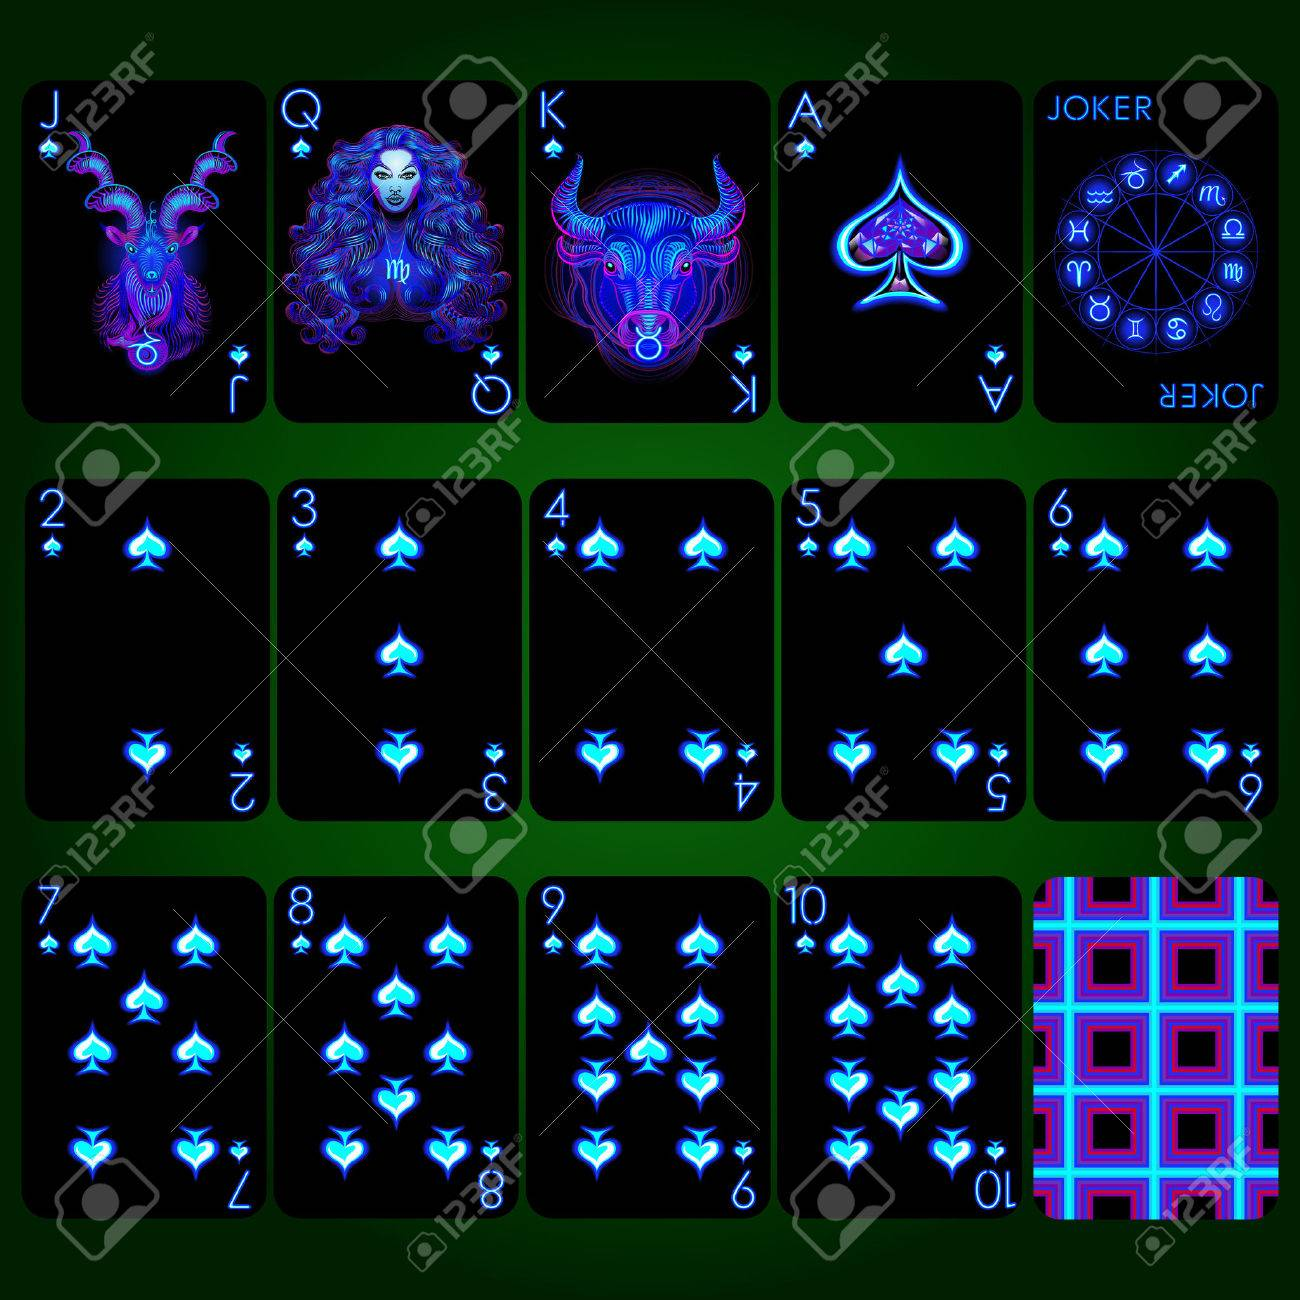 Playing Cards Spade Suit Joker And Back Background Black Card Royalty Free Cliparts Vectors And Stock Illustration Image 68353099